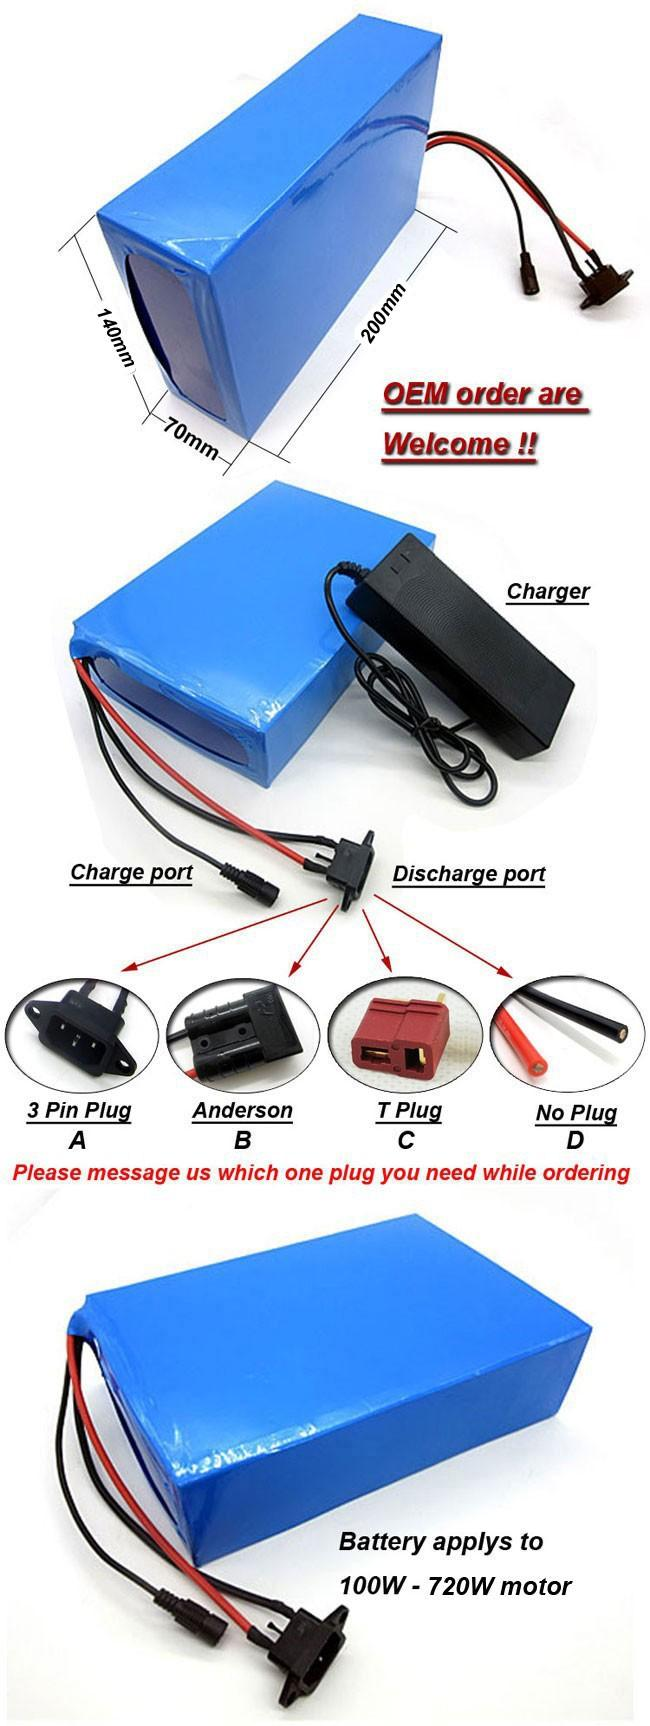 Rechargeable 720W electric bicycle battery pack 24v 30Ah 18650 samsung ebike lithium battery in 30A bms 2A charger